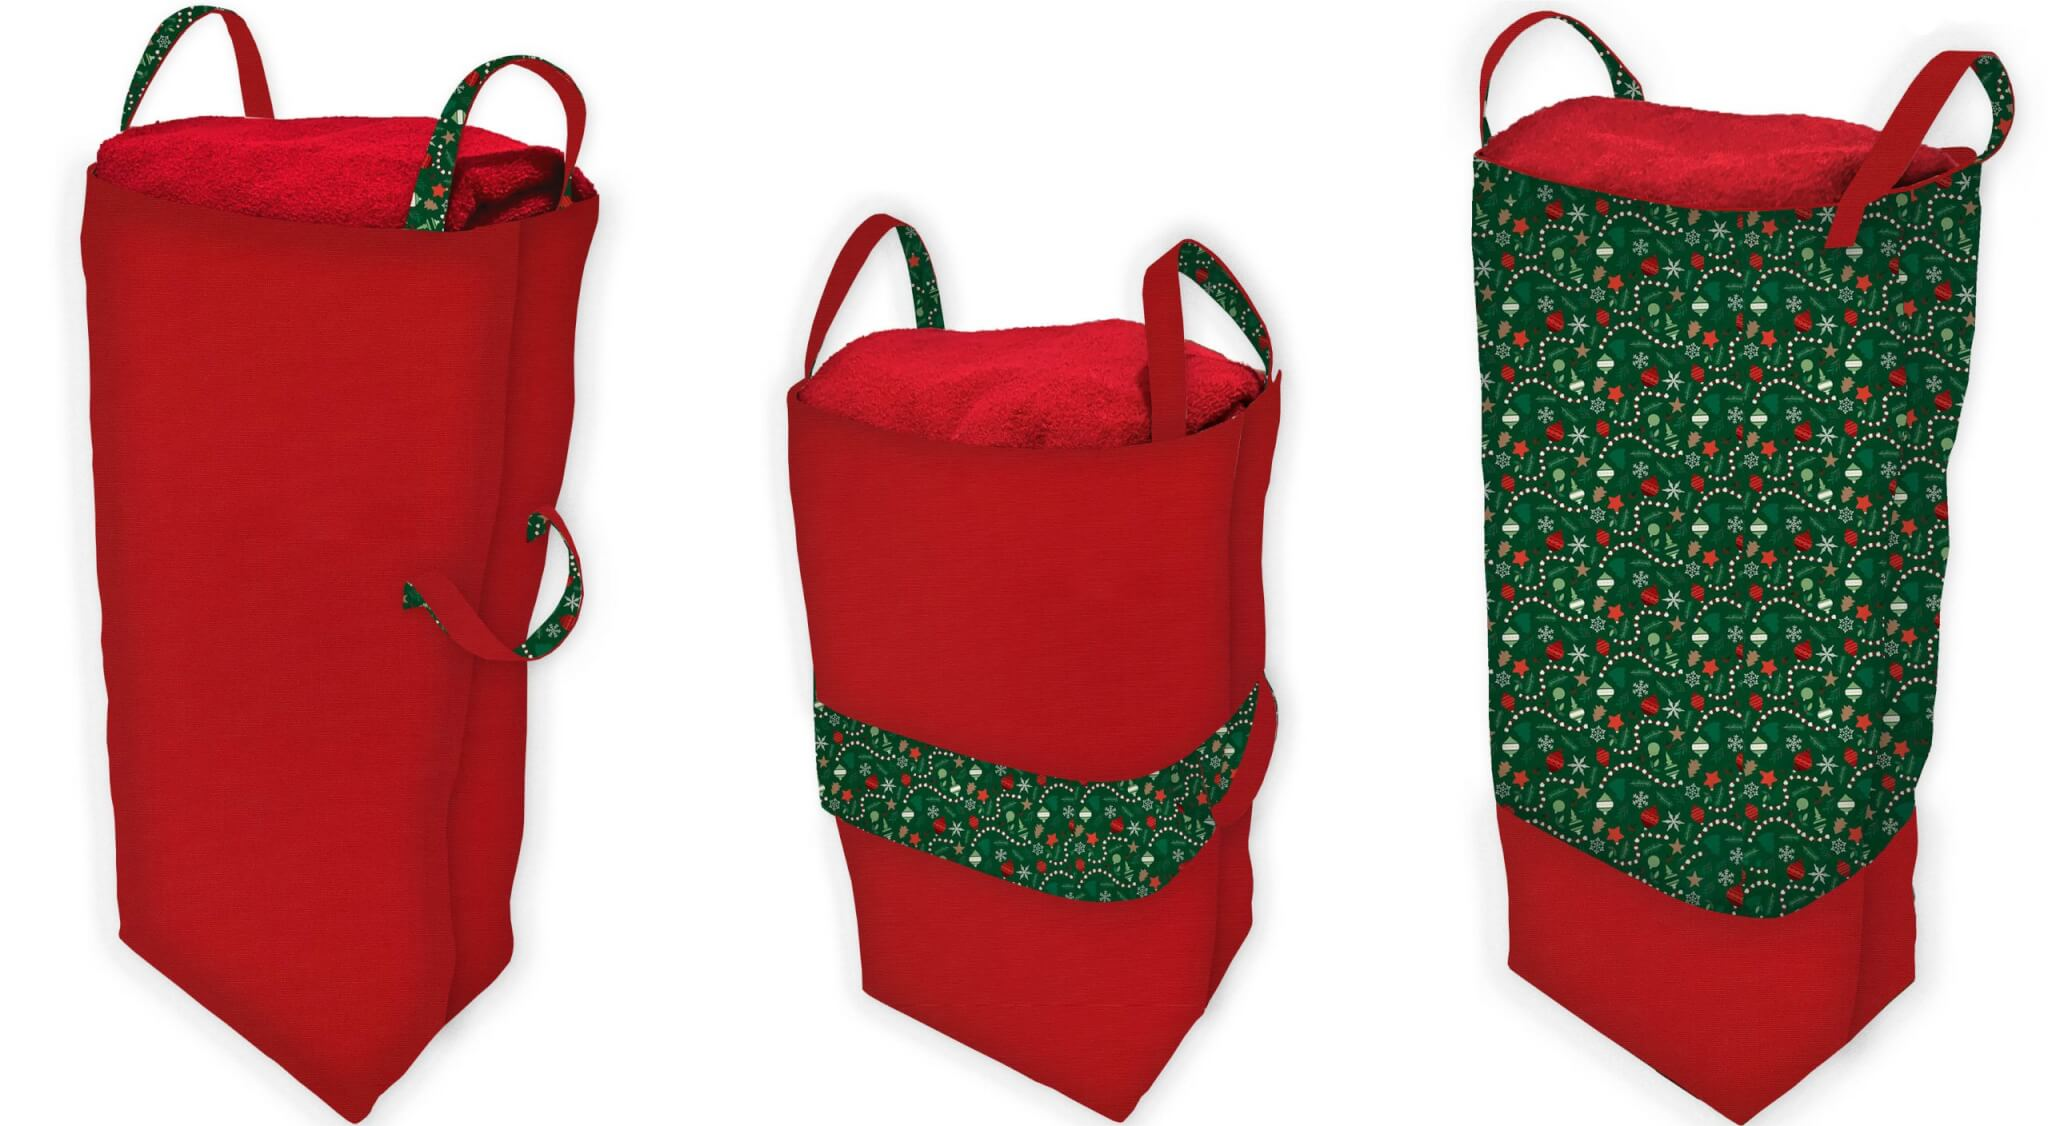 Christmas Traditions Big Bigger Santa Bag Sewing Tutorial at the Nancy Zieman Productions Blog